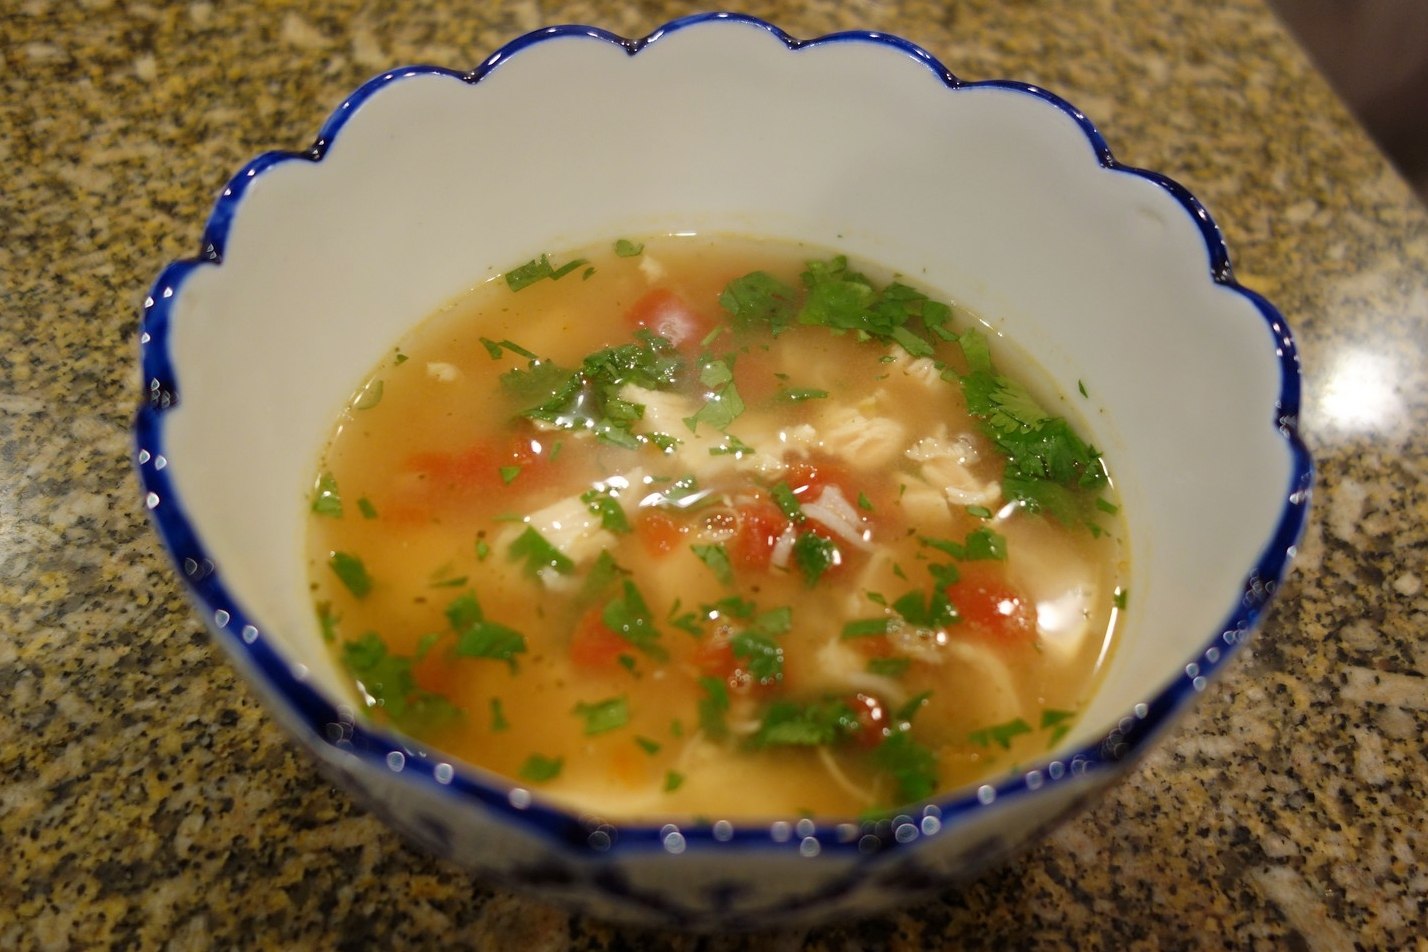 Cilantro added, ready for avocado. With chicken, rice, and tomatoes, This is a hearty soup!